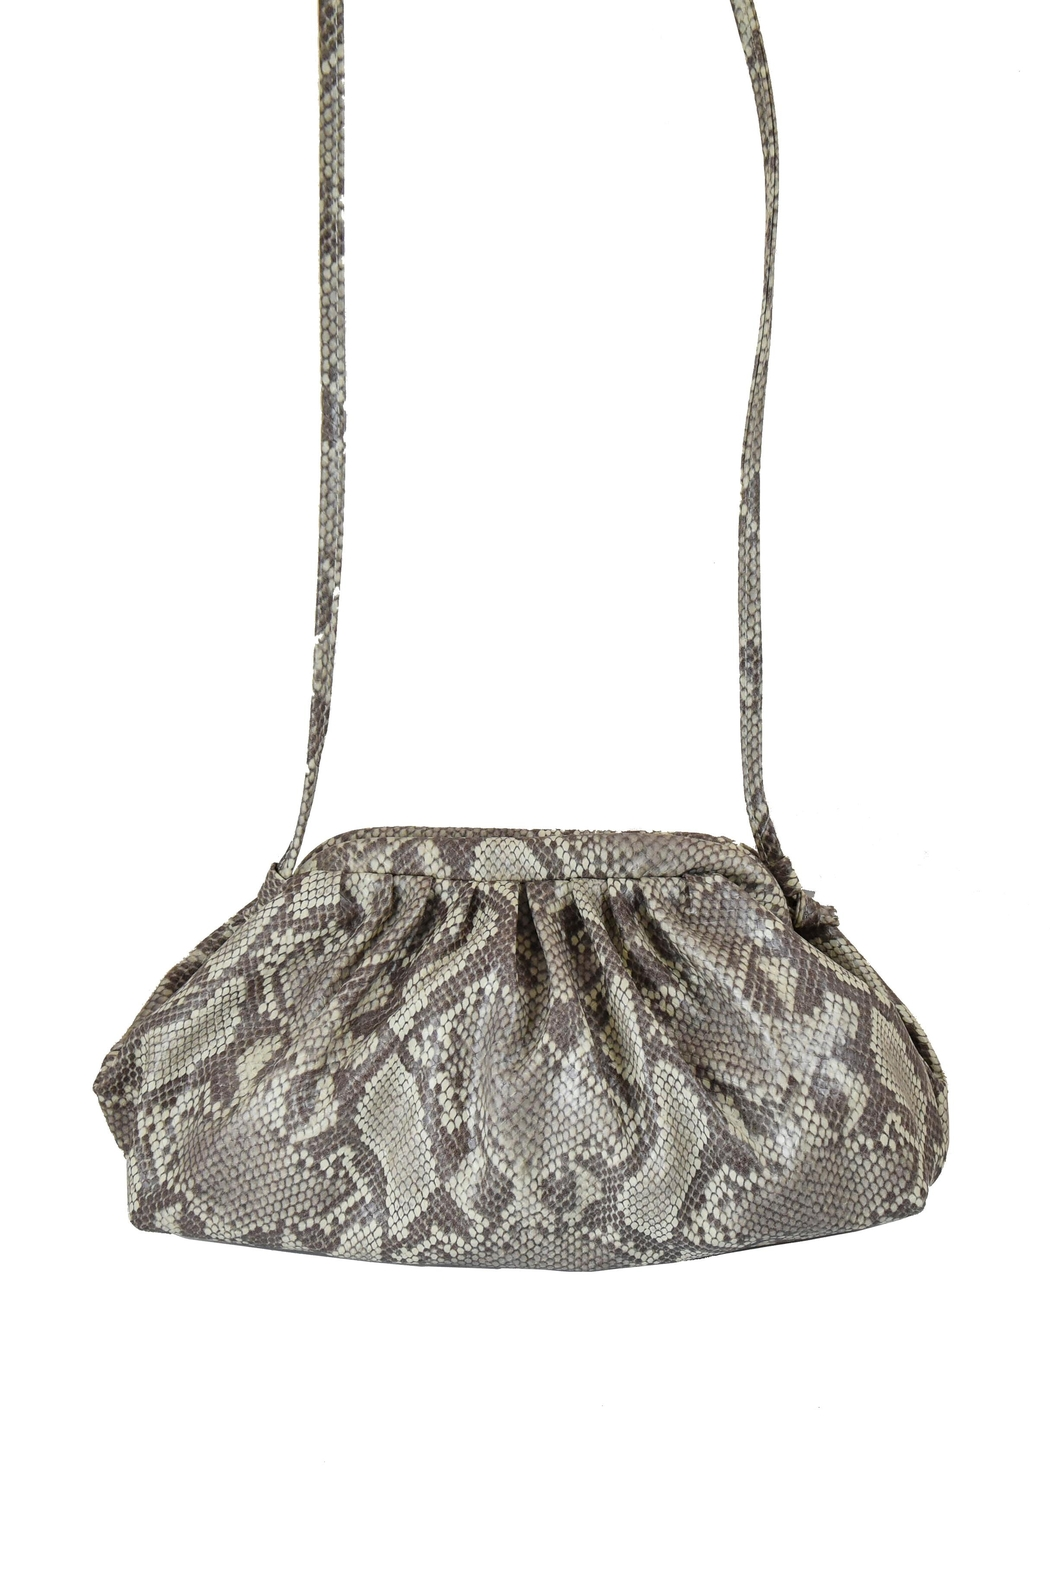 INZI Animal Print Crossbody - Front Full Image